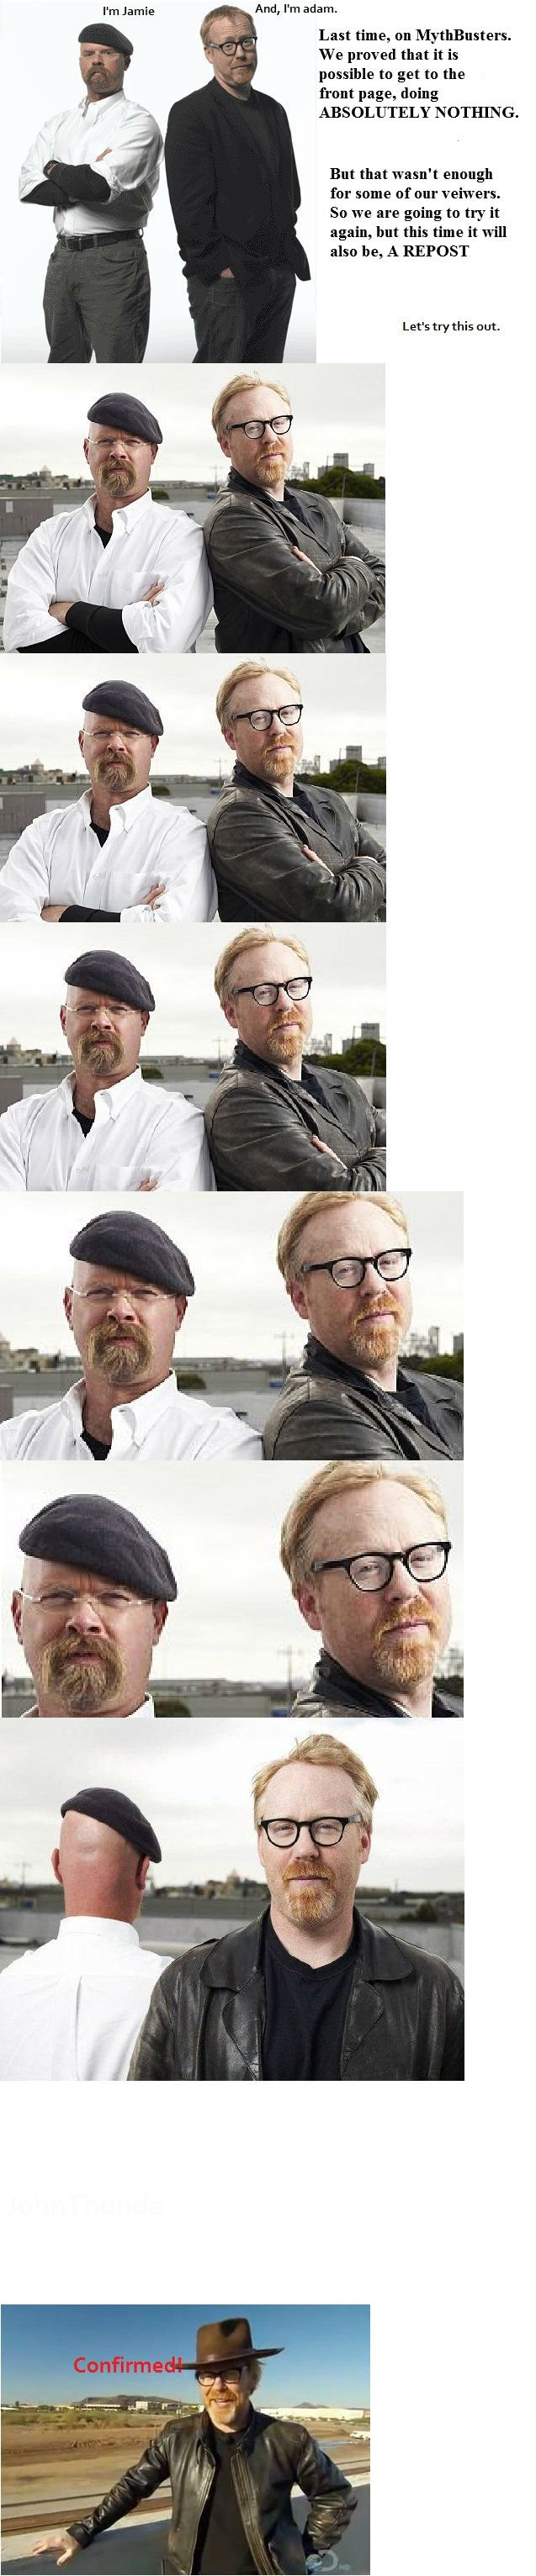 Today On Mythbusters. Link to original: . Last time, an Mythbusters We proved that it is possible In get to the from page, doing But that wasn' t anough for sam